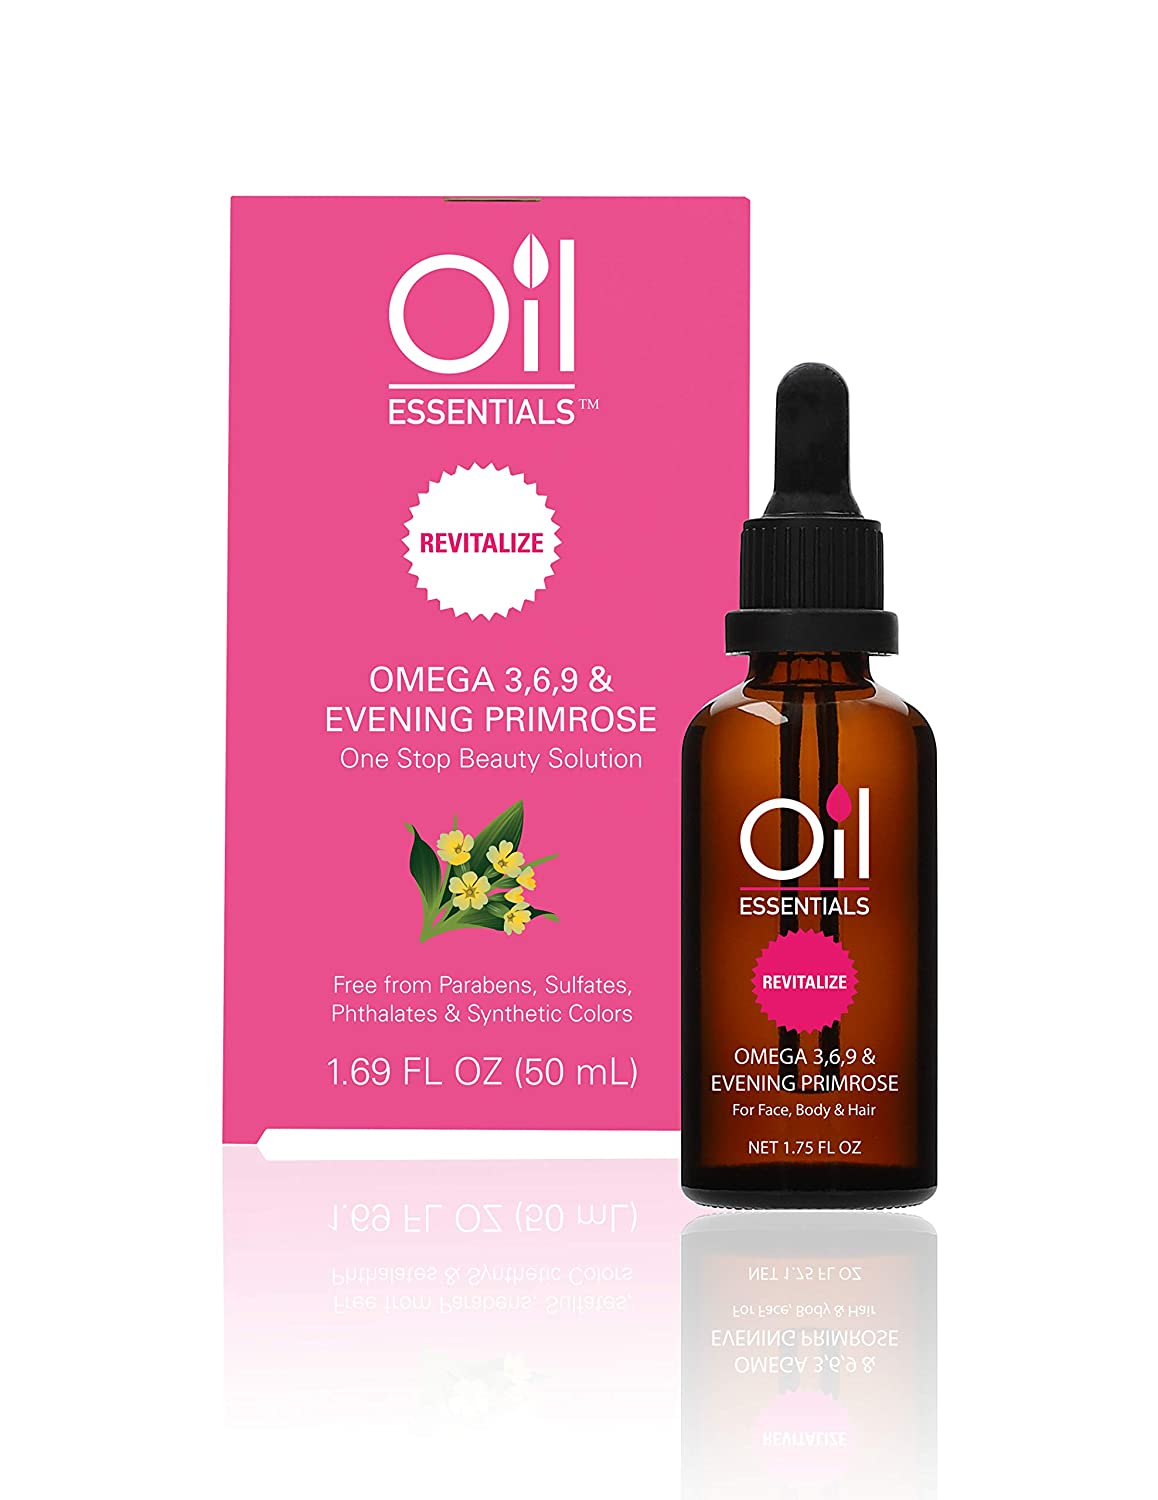 Oil Essentials Revitalize Evening Primrose Beauty Solution - Natural Healing Oil for Face, Skin, Hair, and Nails - Free of Parabens, Sulfate, Phthalate, and Synthetic Color 1.69 fl oz (50ml)